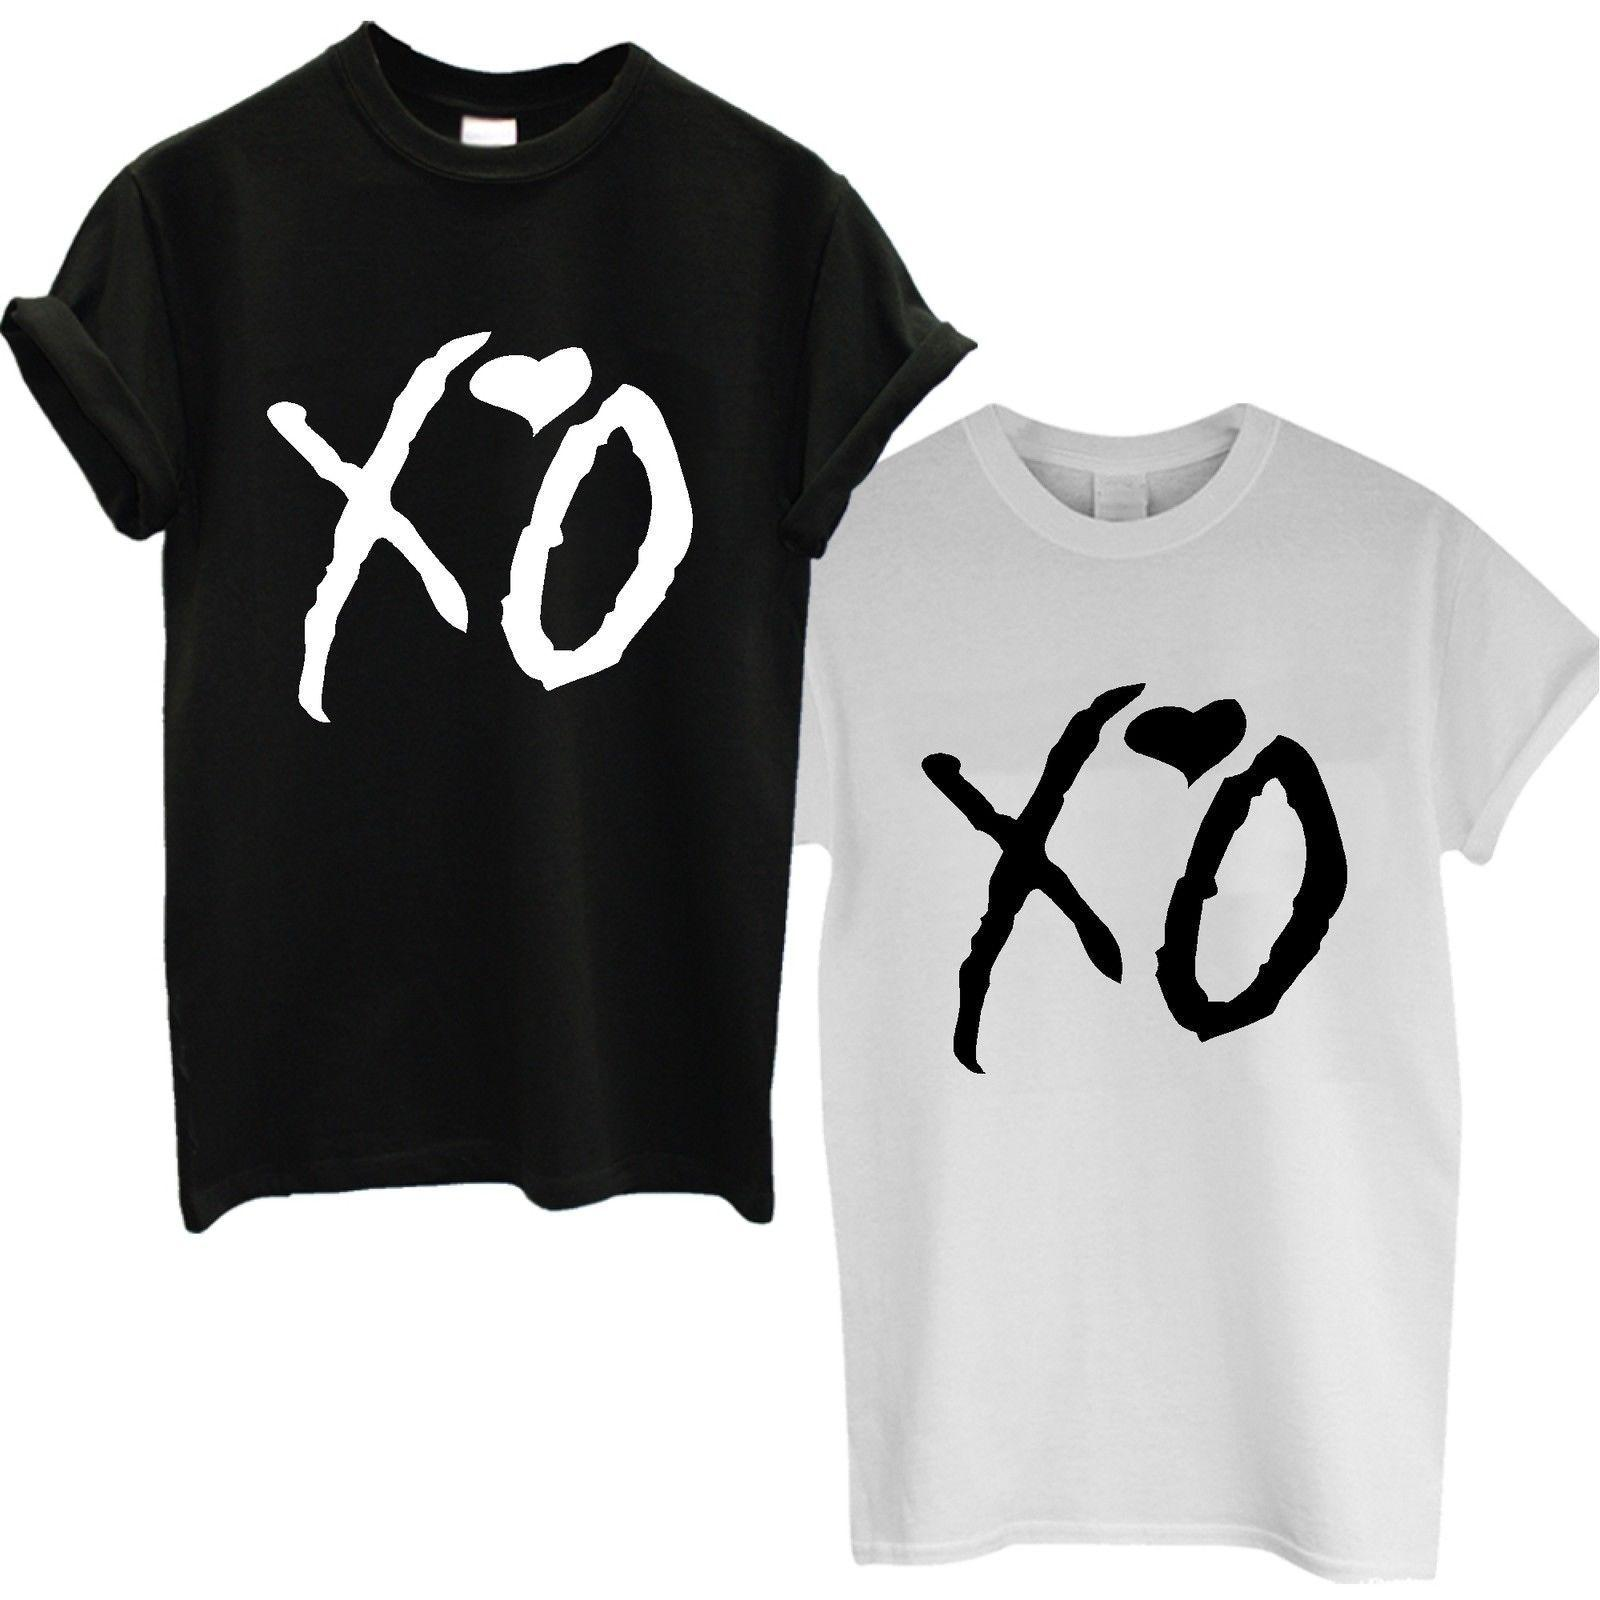 ab717fc2a XO T SHIRT THE WEEKND STARBOY TOP OCTOBERS VERY OWN MENS OVOXO DRAKE  CONCERT Buy Cool T Shirts Funky Tee Shirts From Designtshirts, $13.91|  DHgate.Com